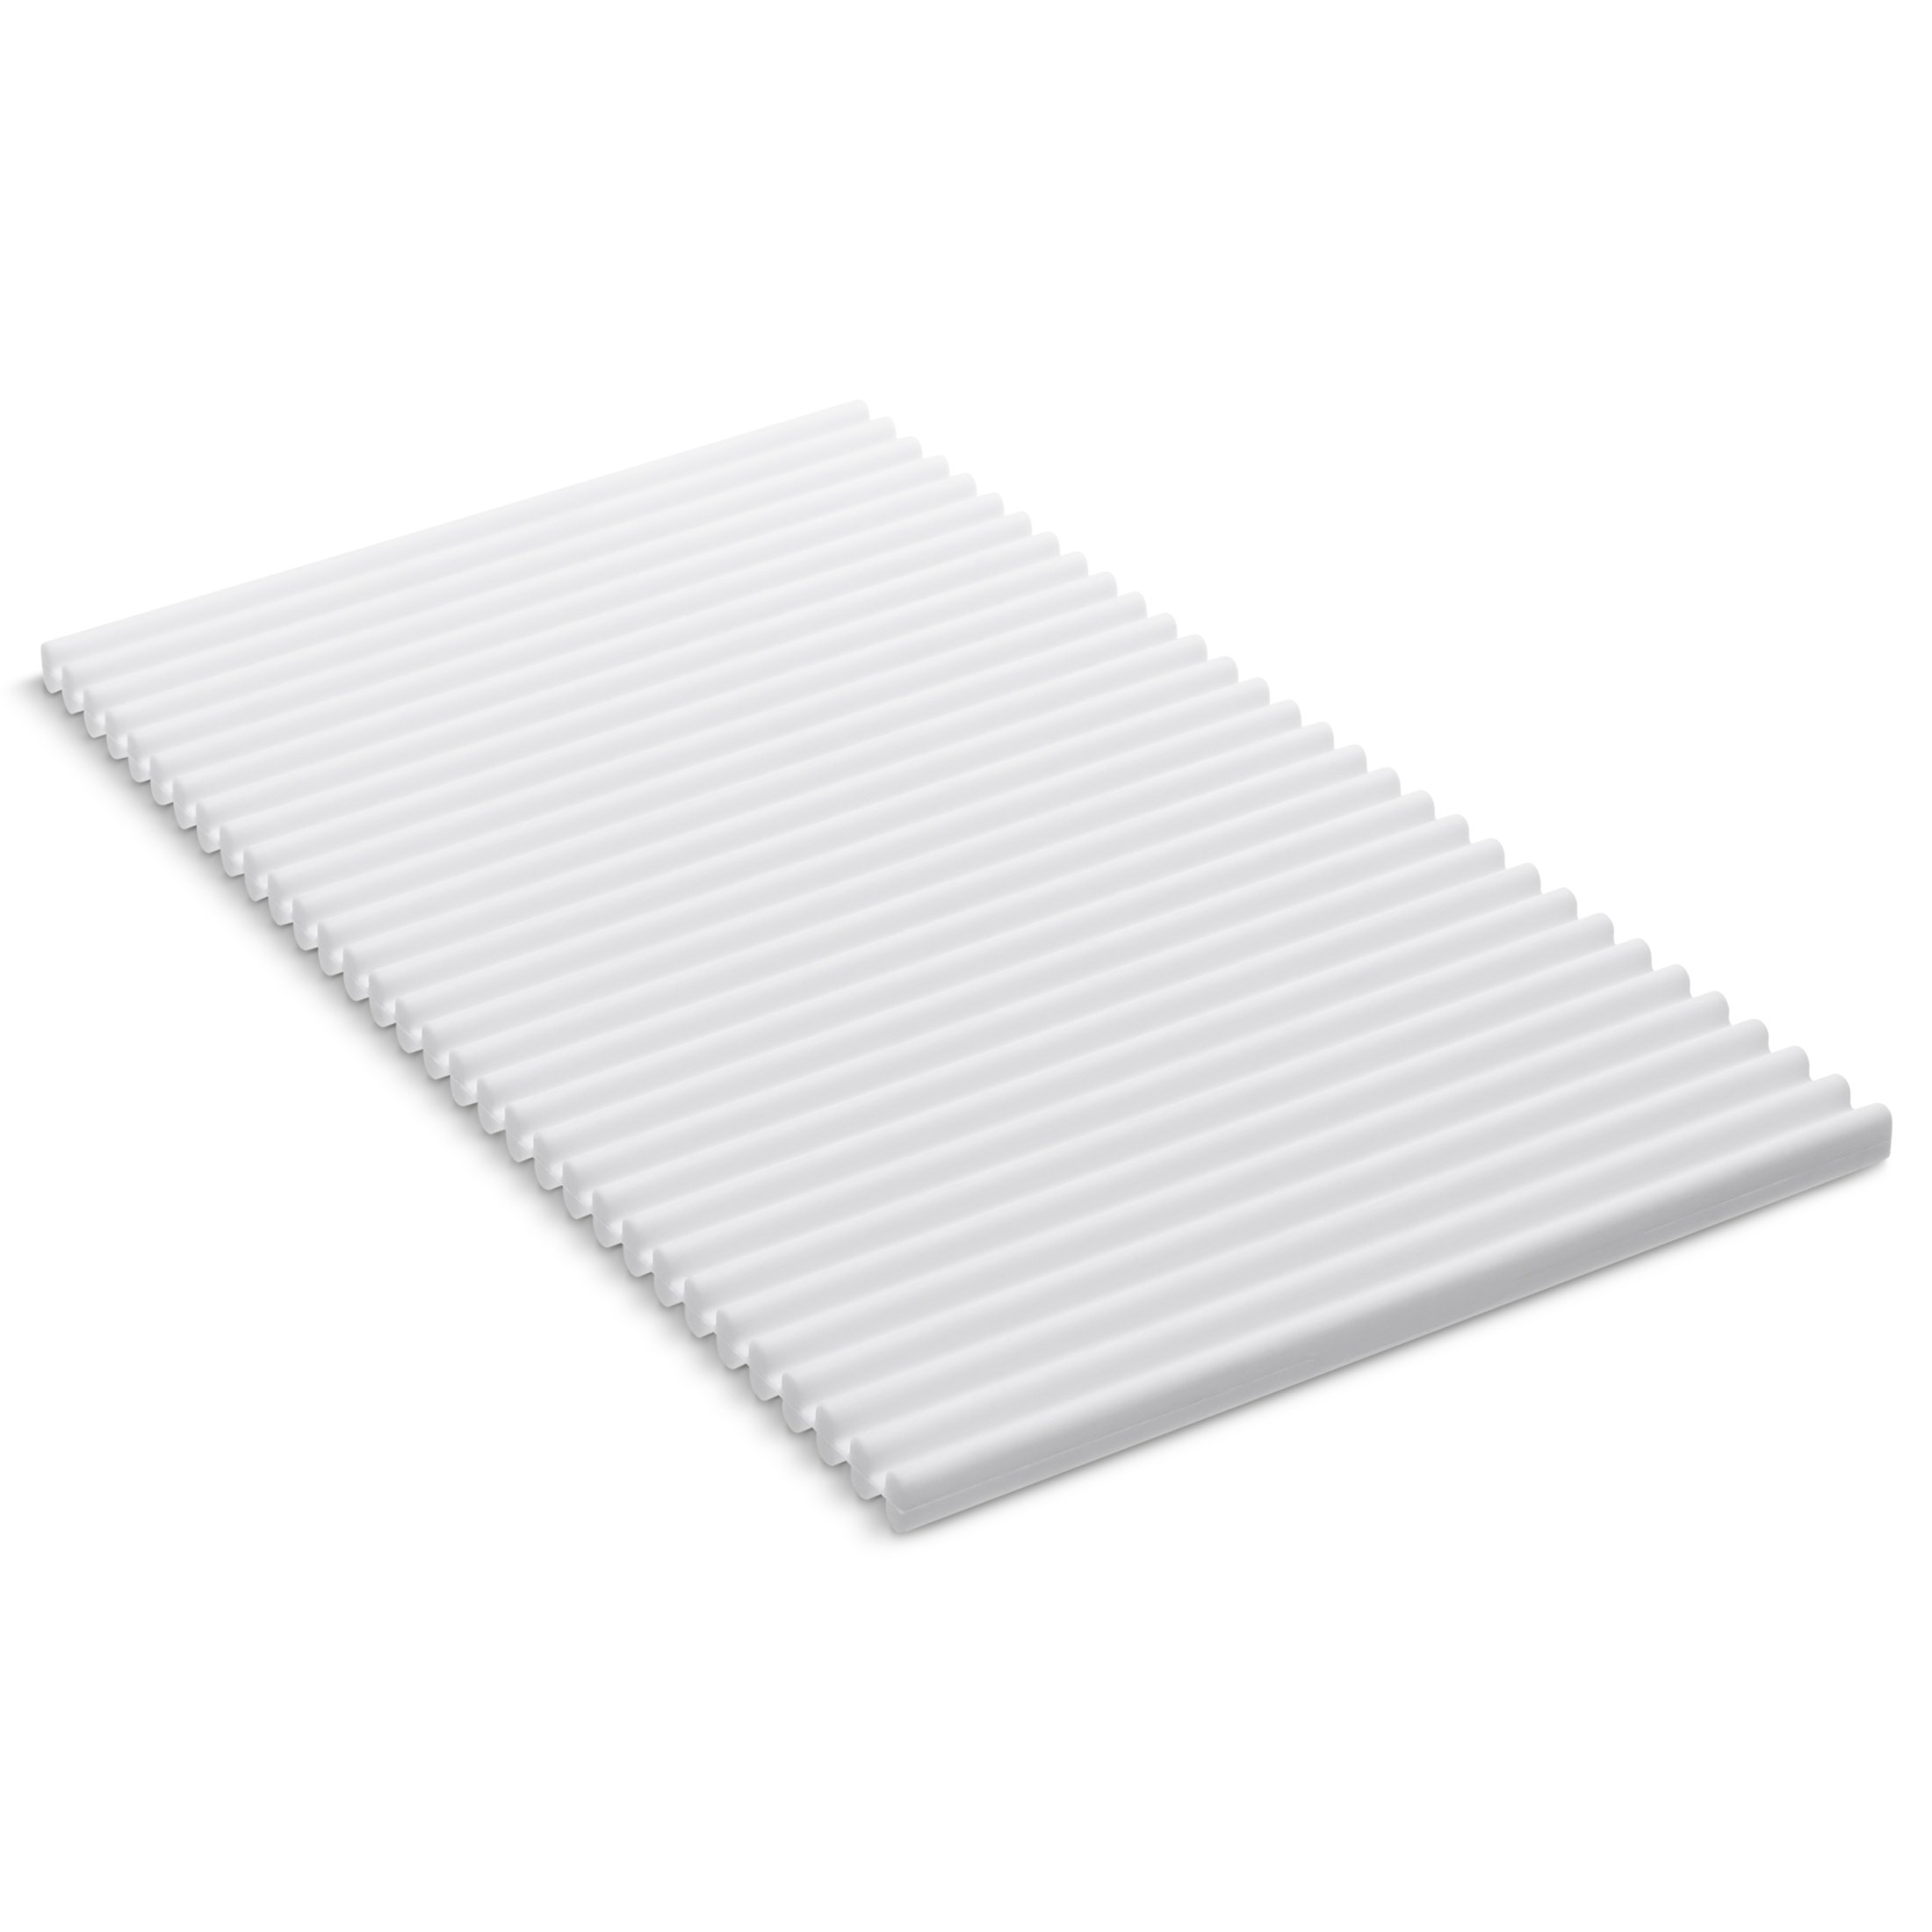 KOHLER Storable Silicone Dish Drying Mat or Trivet 7'' x 11.8'', Heat Resistant up to 500 Degrees F, White